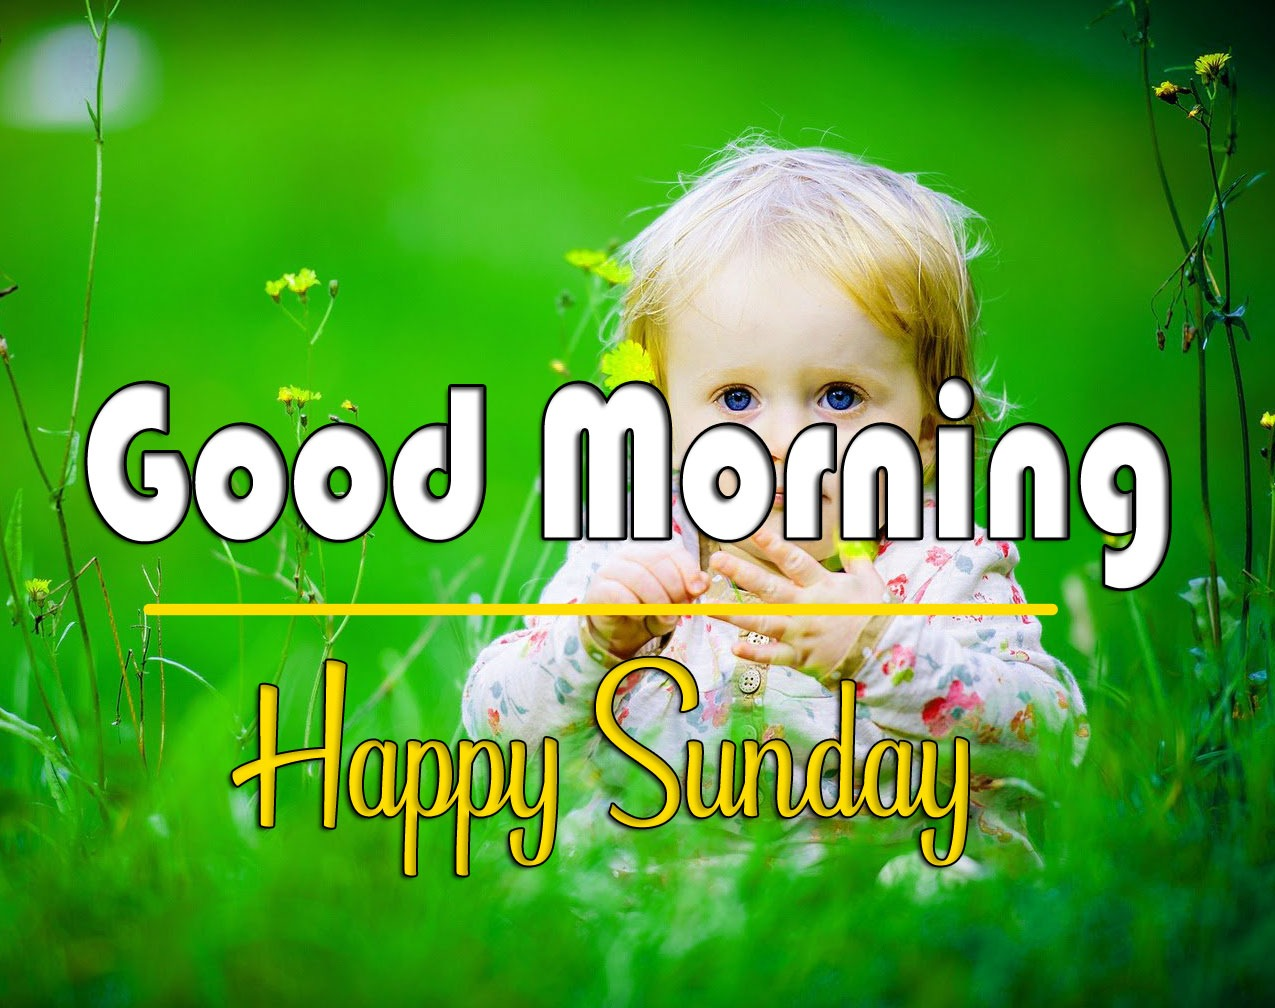 sunday good morning Wallpaper With Cute Baby